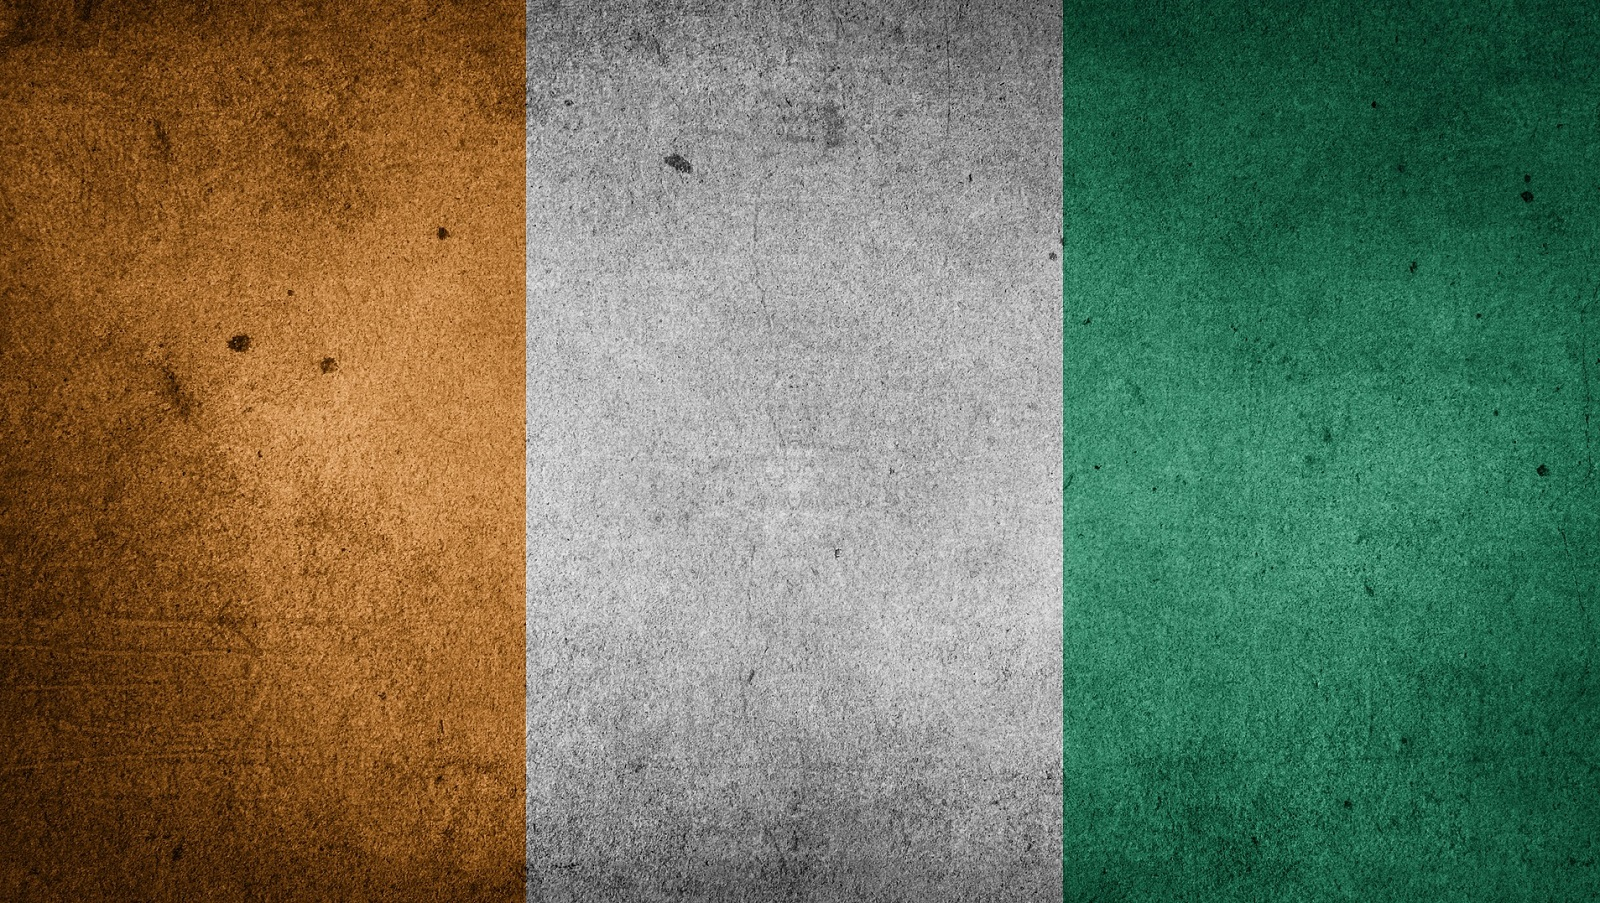 Ivory Coast has $210m edtech market but investment badly needed, finds Seedstars report - Ventureburn